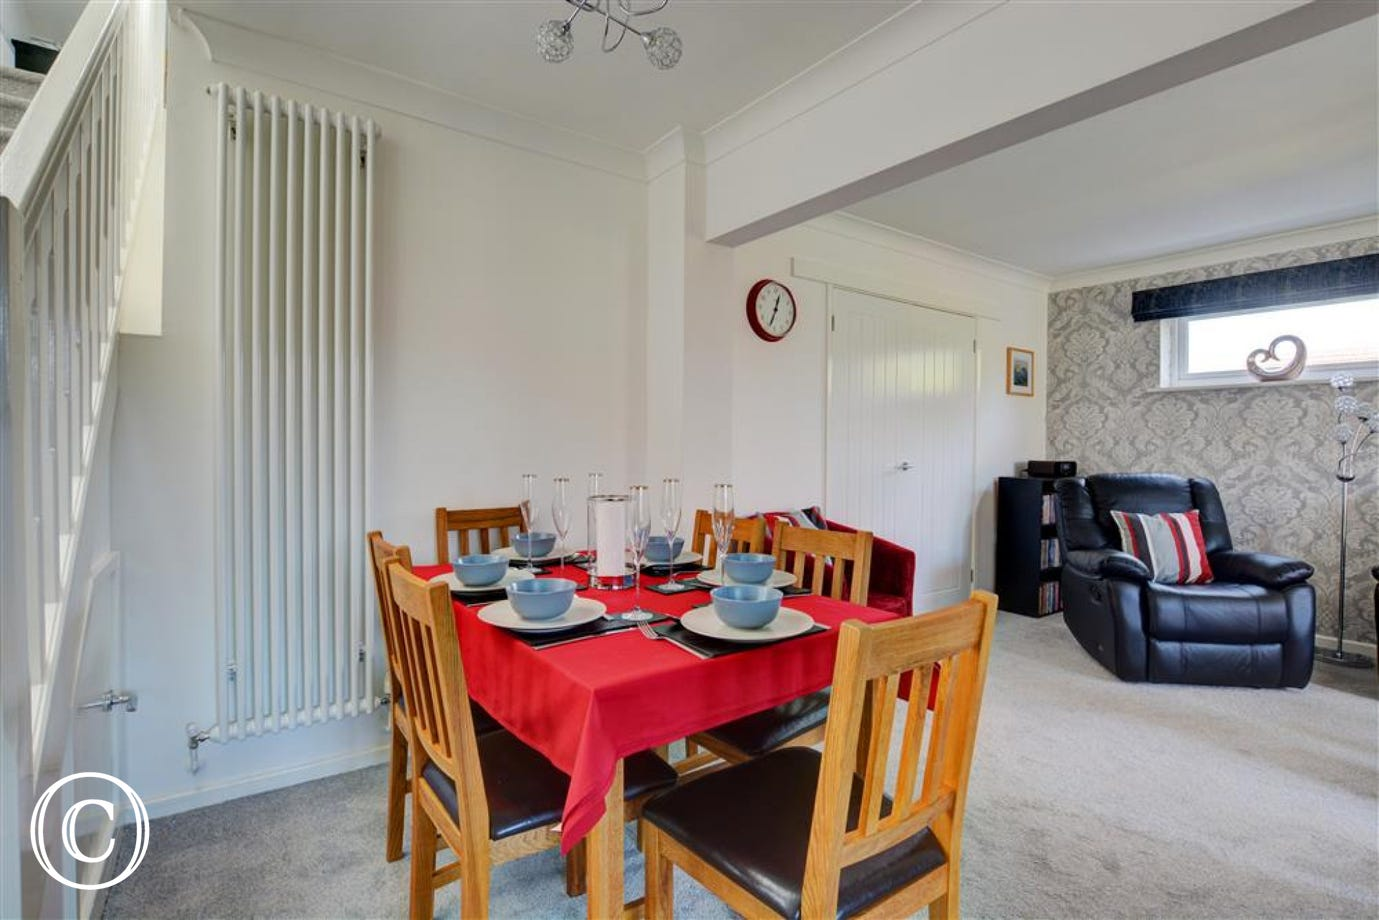 Convenient dining area within the living space